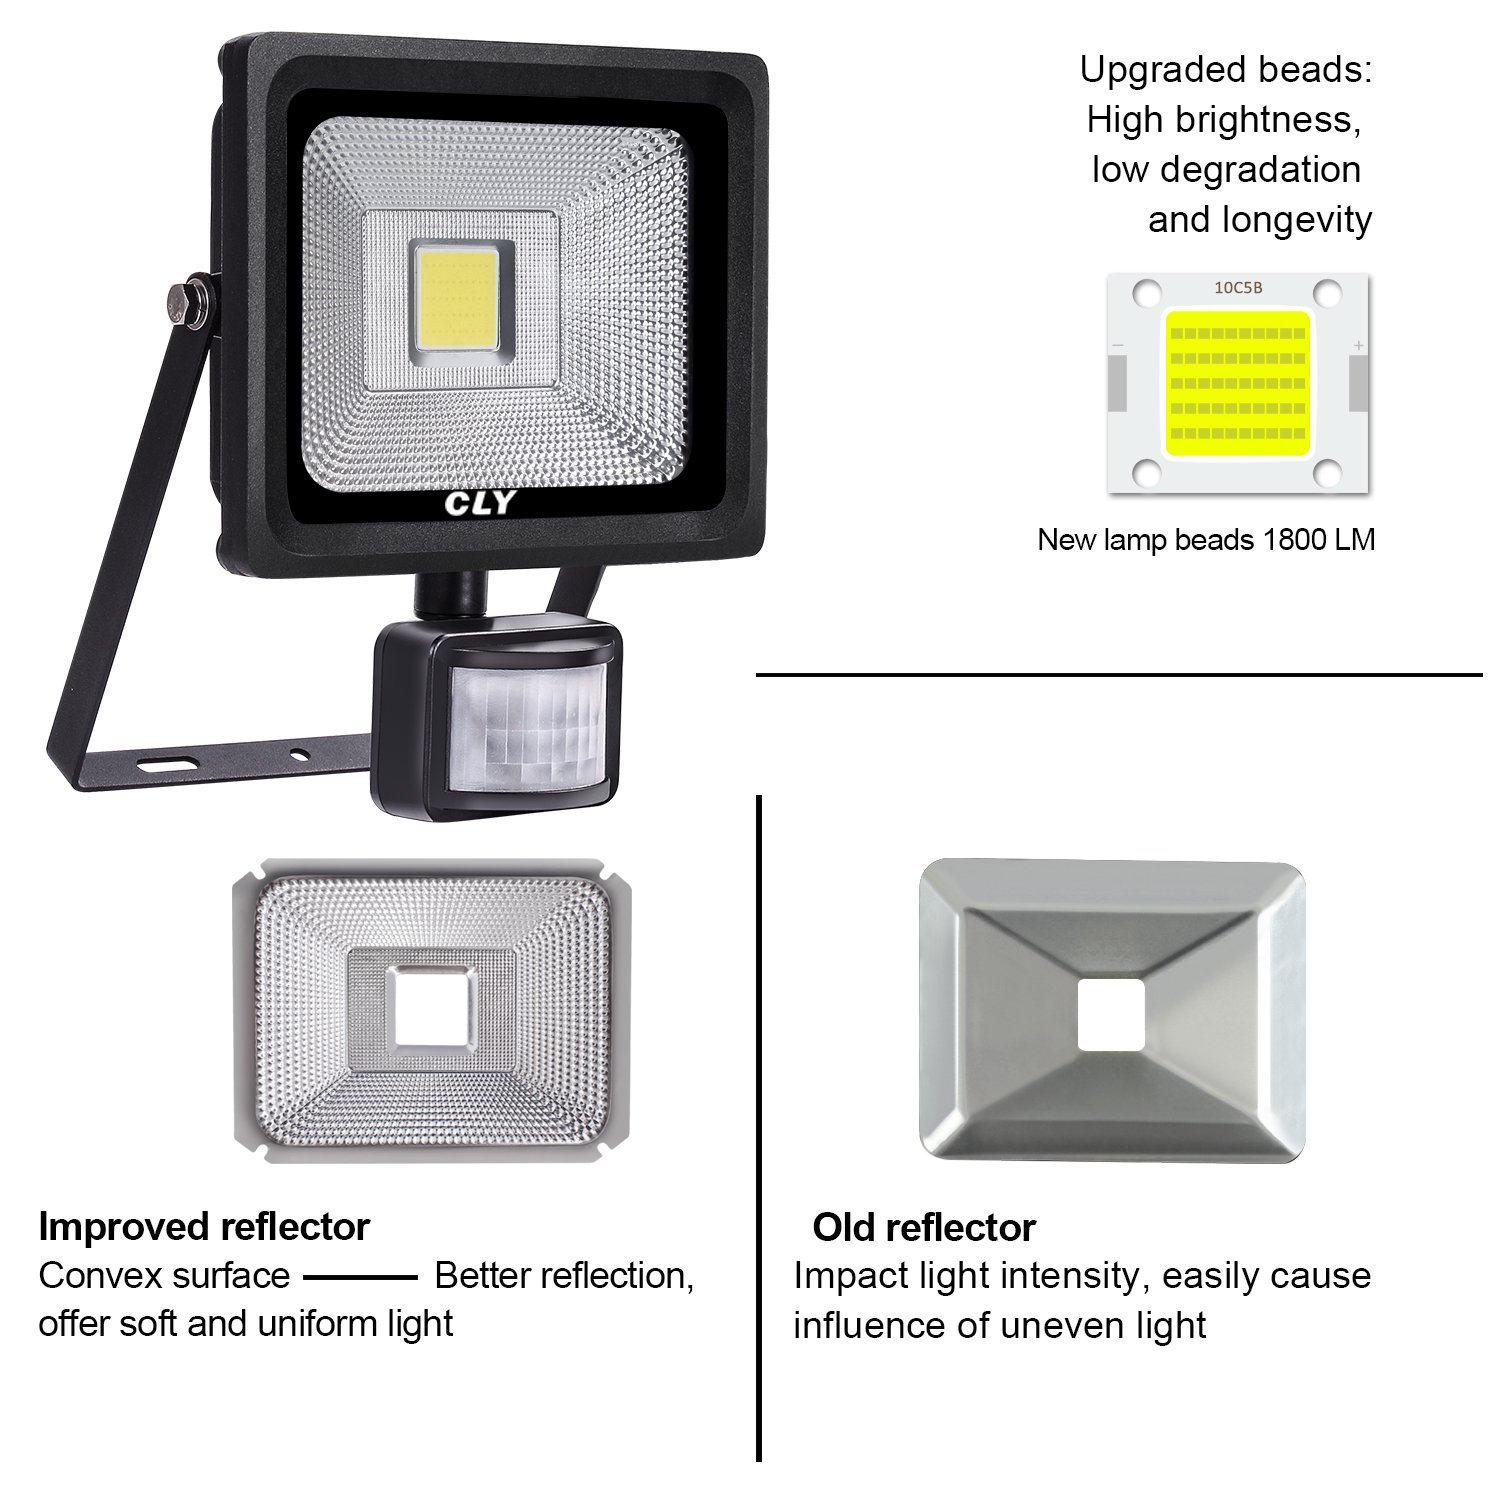 Cly 20w Led Motion Sensor Floodlight Outdoor Security Flood Lights Ac Powered Circuit 120w Enkonn Technology Co Ltd 1800 Lumens Waterproof Ip66 Cool White 6000k Without Plug